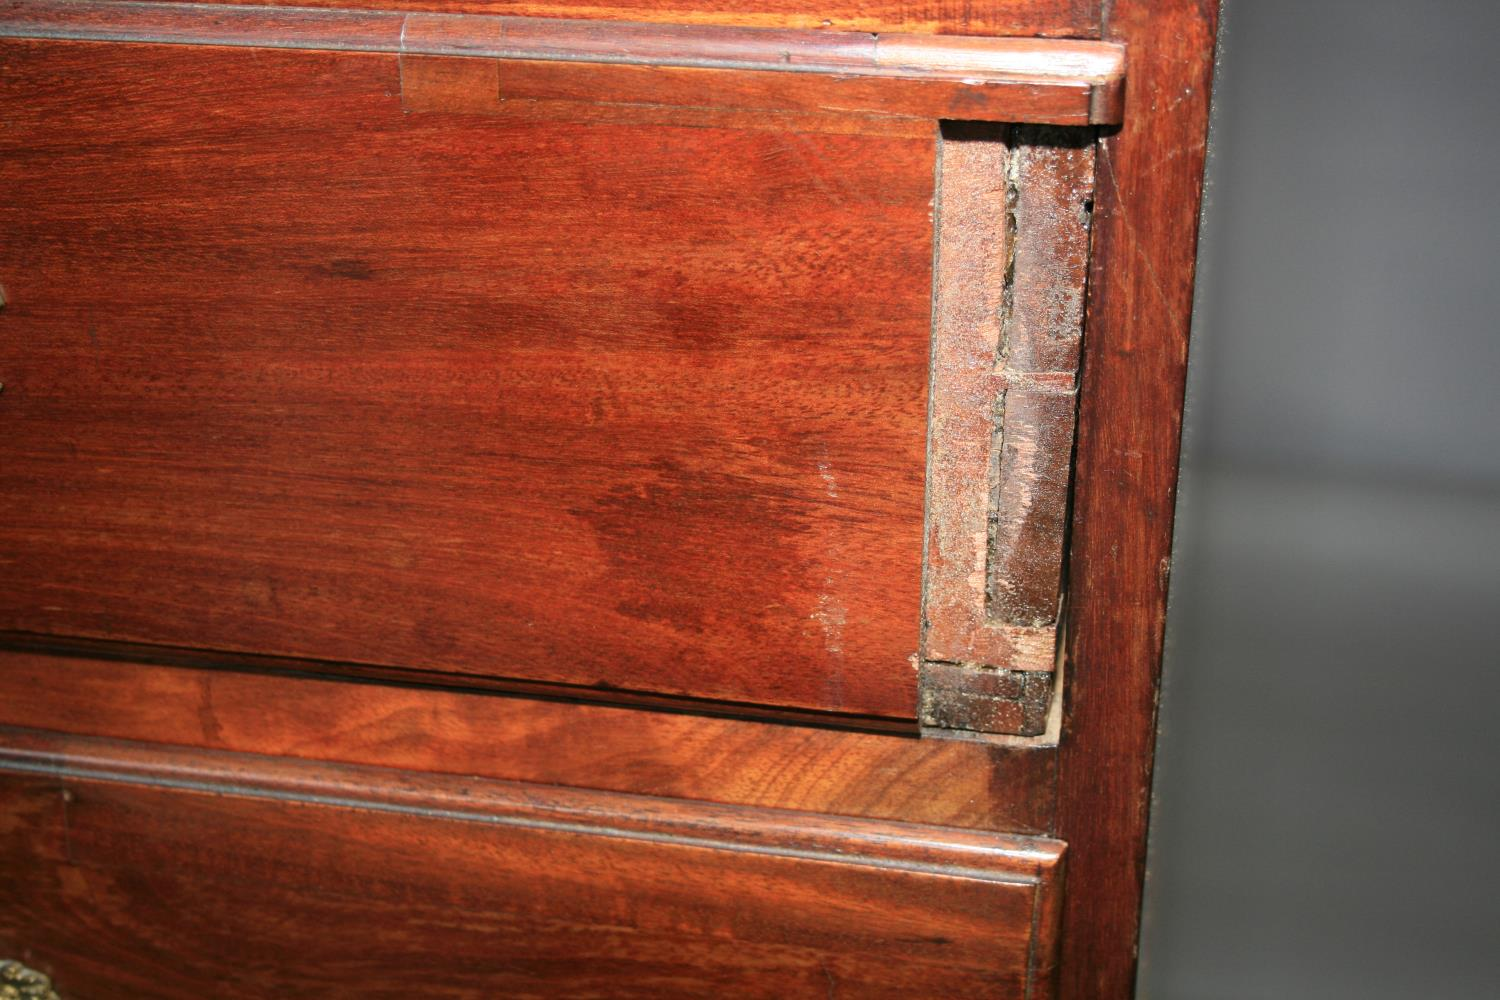 Fine 18th Century mahogany chest of drawers with two short and two long graduated drawers on bracket - Image 3 of 4